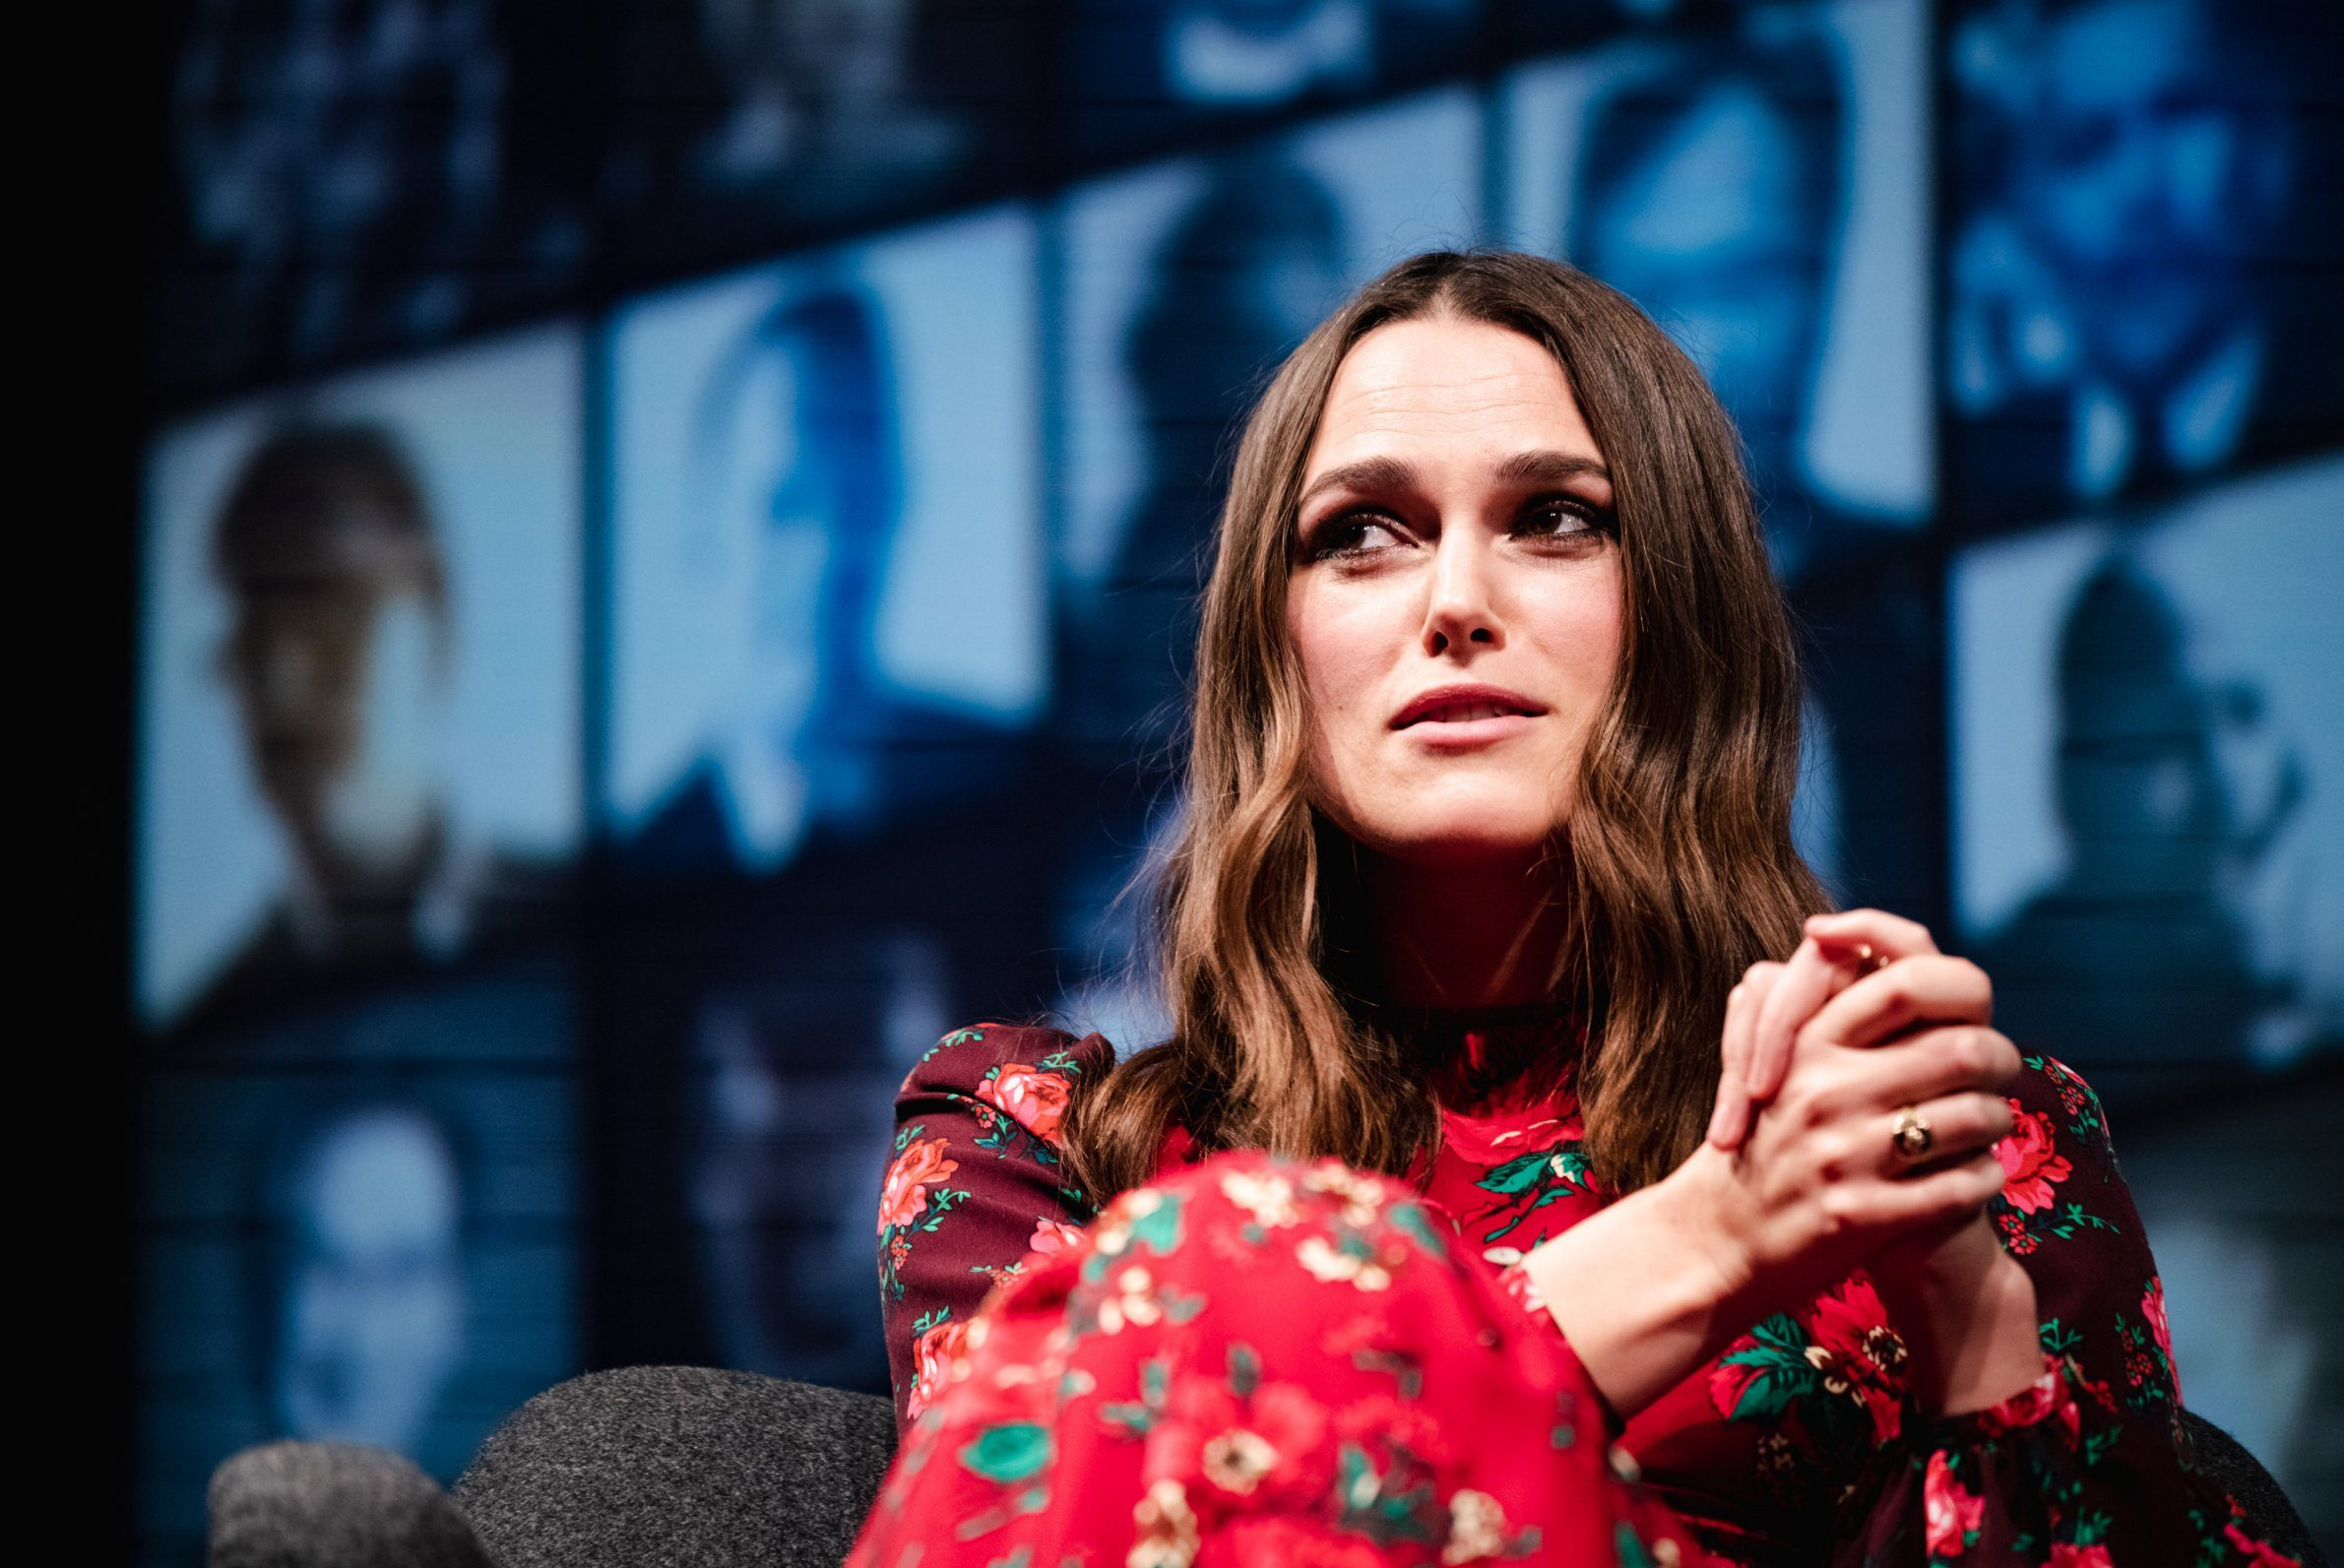 Keira Knightley nearly gave up on acting after being diagnosed with PTSD